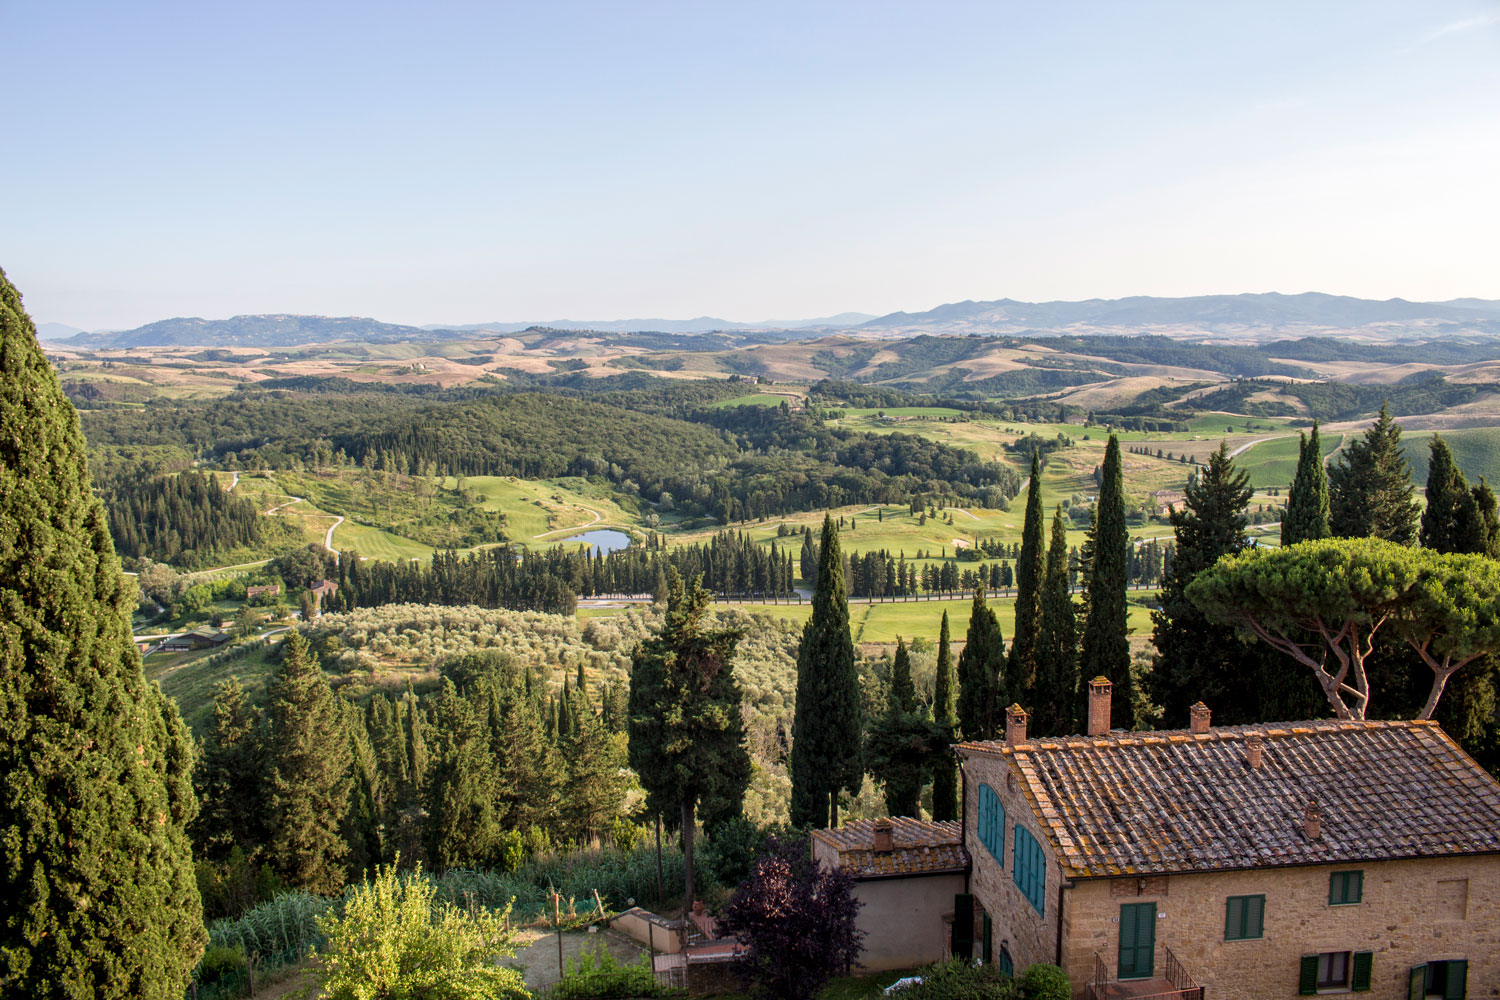 A view of Tuscany, overlooking rolling hills, winding roads and centuries-old vineyards as the warm sun shines down on Castelfalfi, Italy.